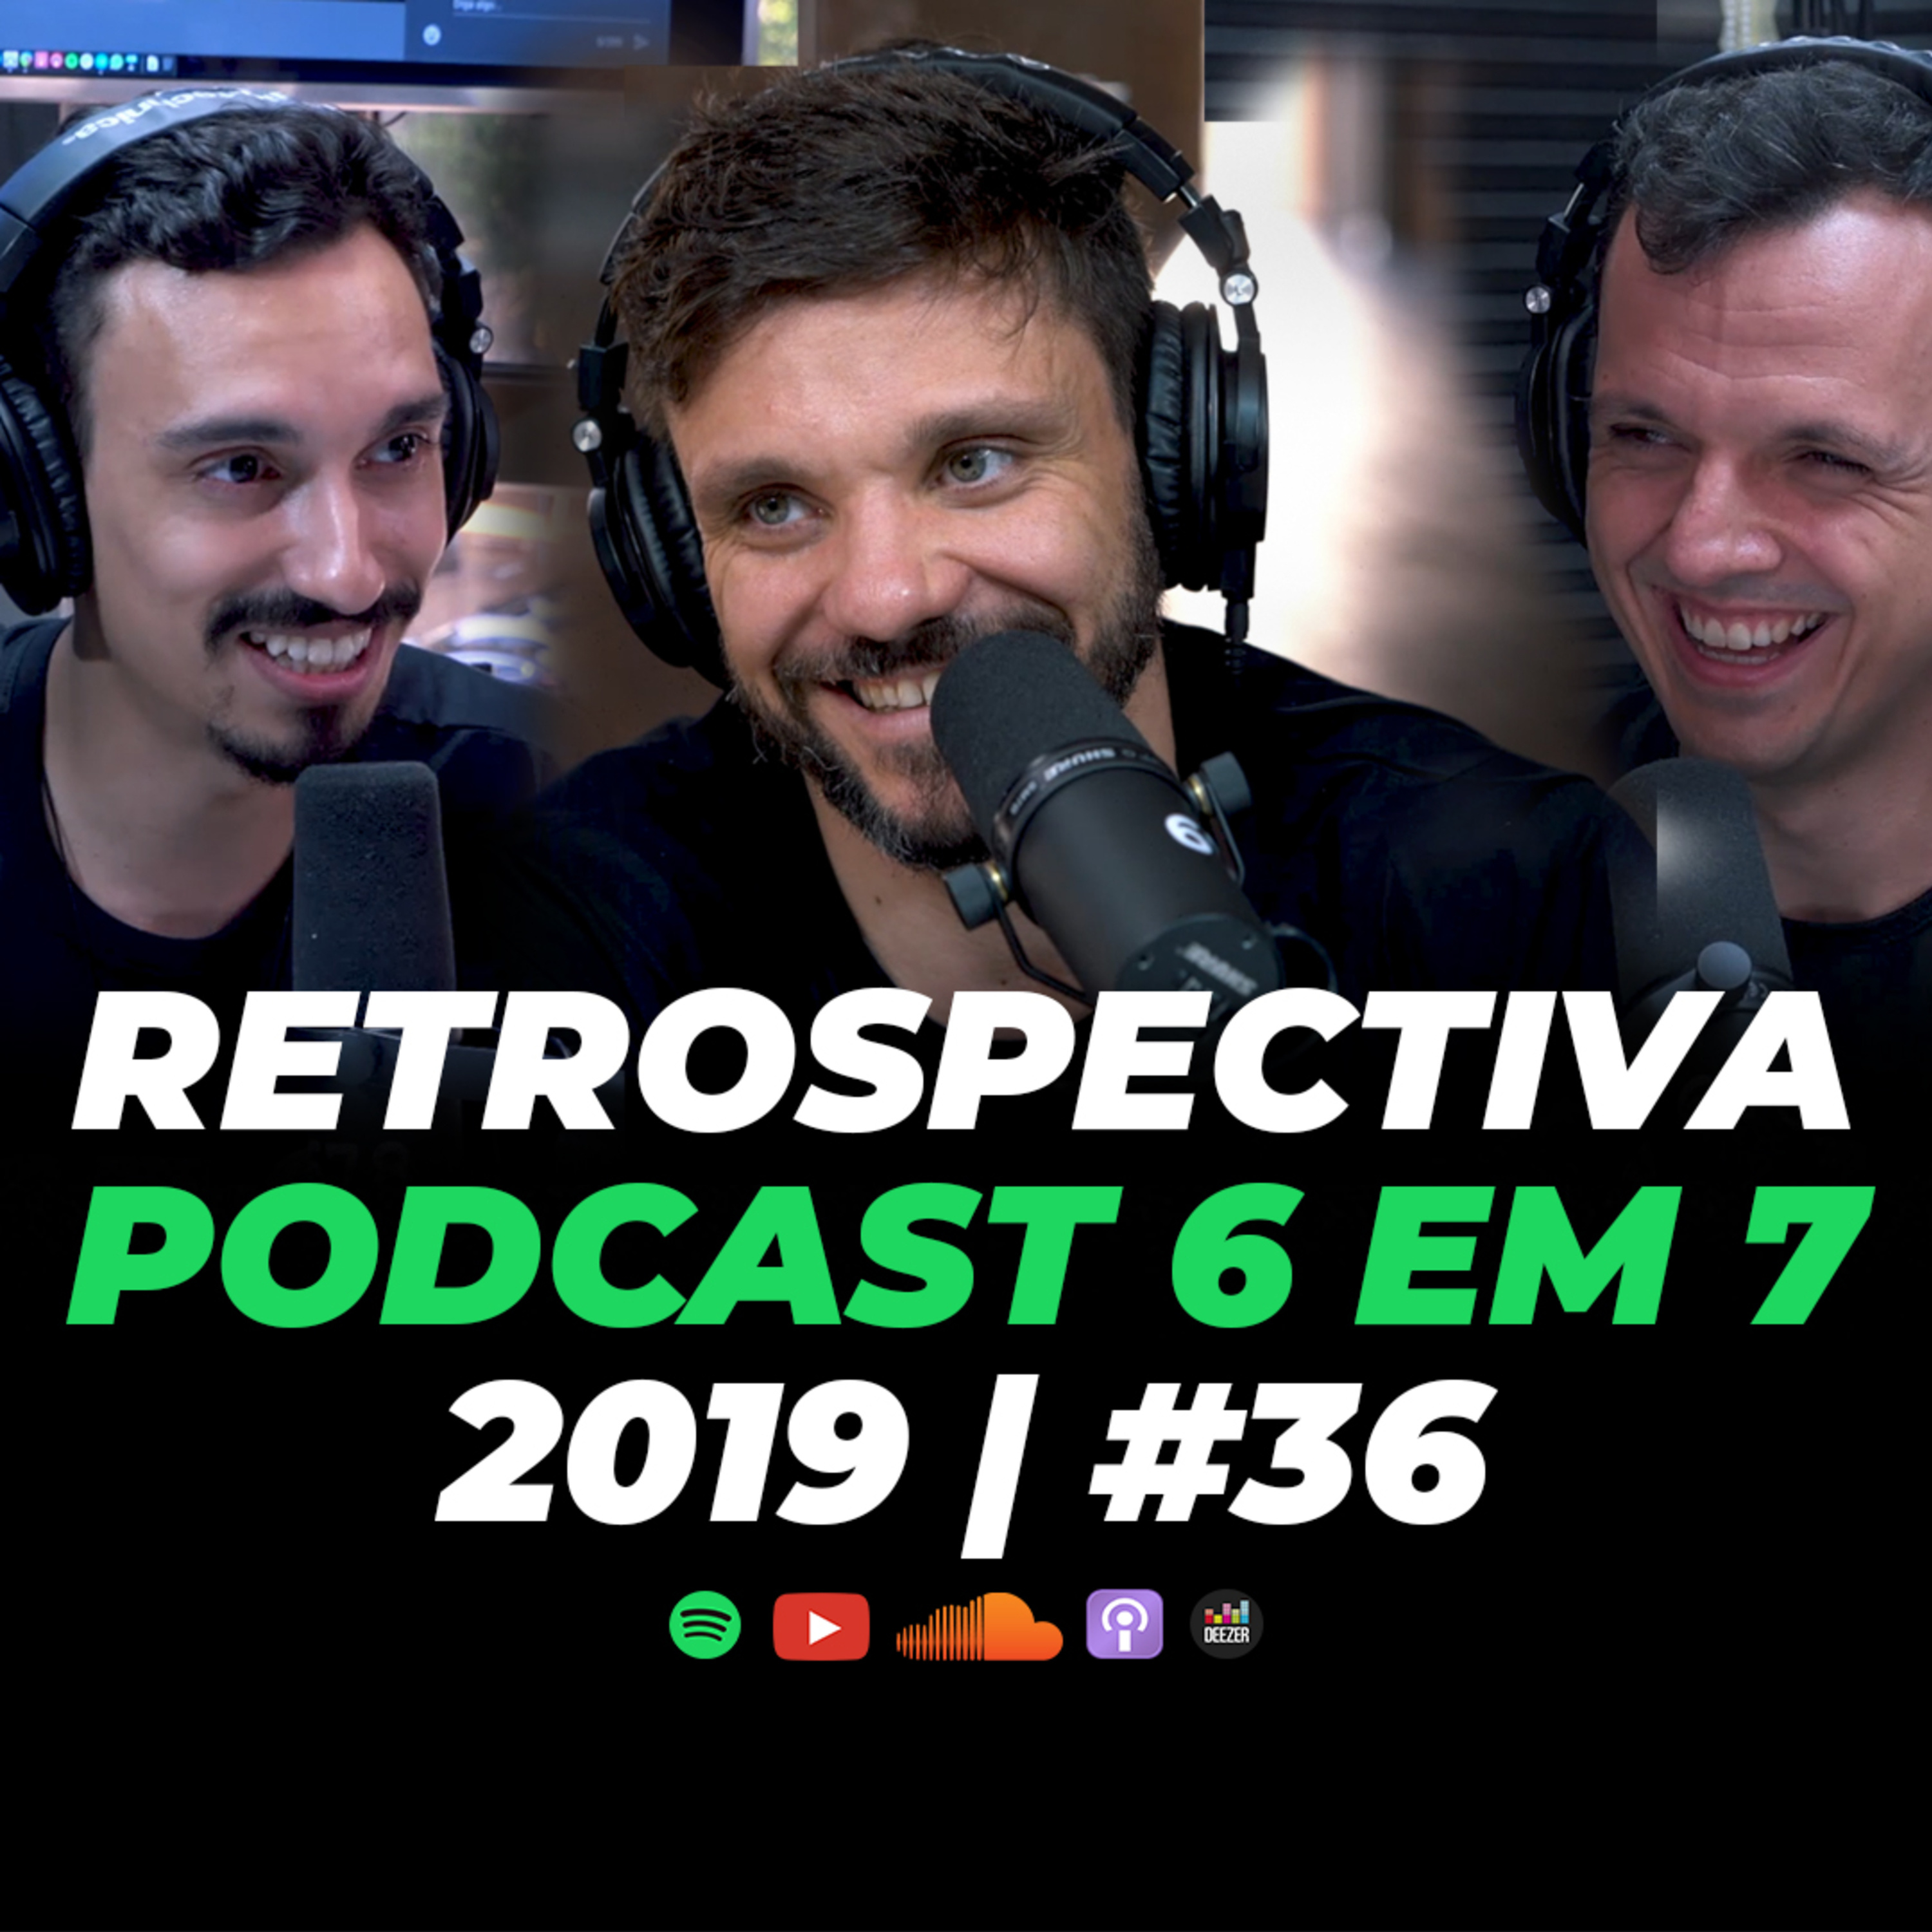 Retrospectiva do Podcast 6 em 7 | Podcast 6 em 7 #36